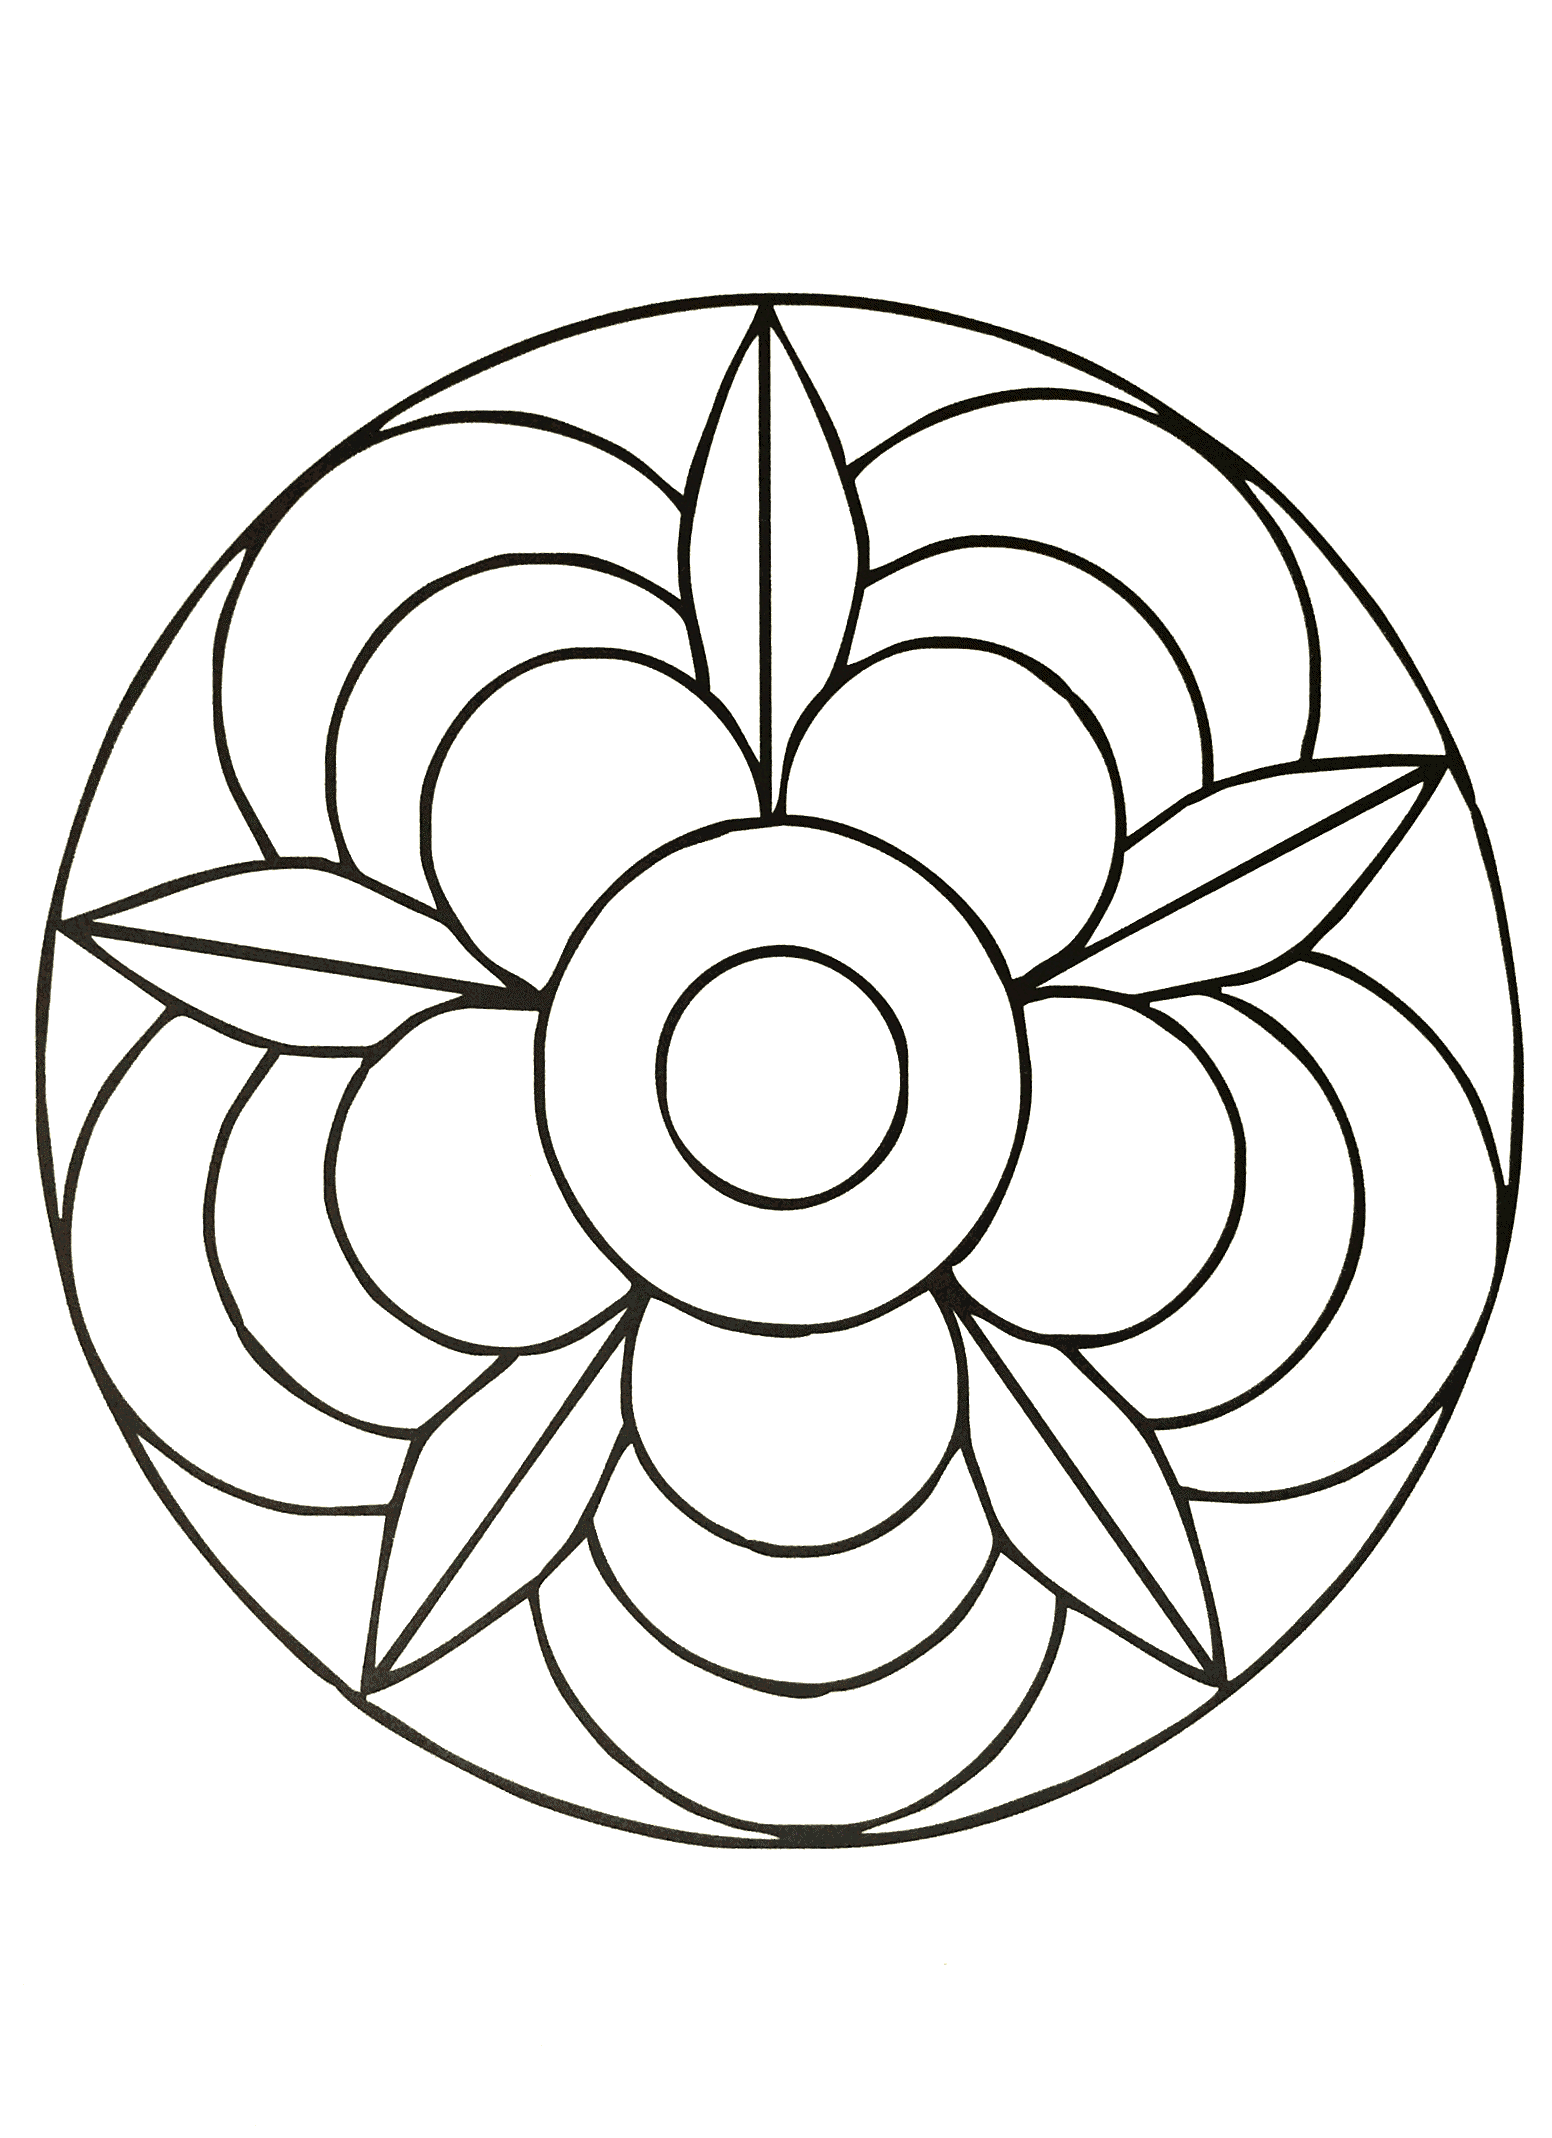 A mandala coloring page for the youngest, low level of difficulty. Coloring can help your children to learn the skill of patience. It allows your children to be relaxed and comfortable while creating a piece of art.